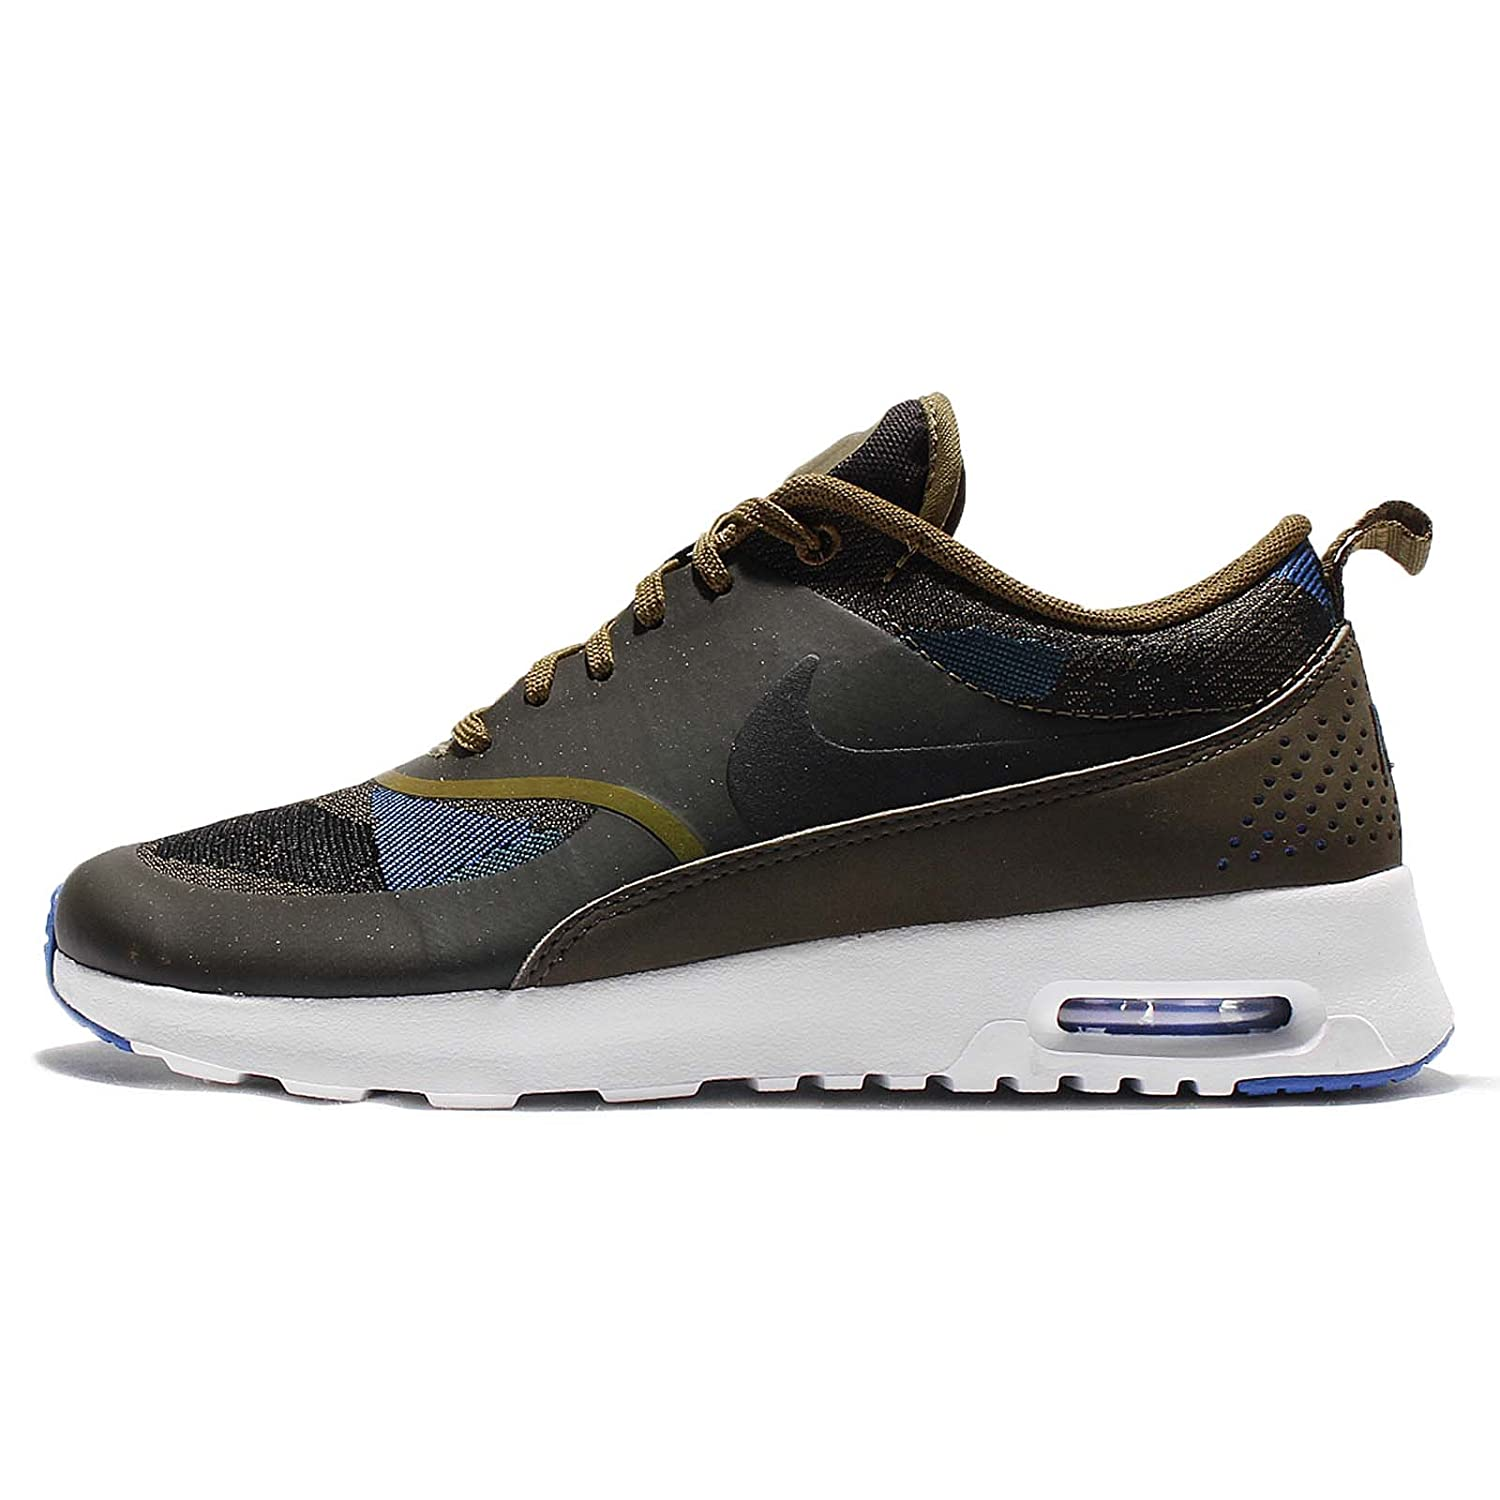 new style 0adcf 7288f Amazon.com  NIKE Womens WMNS Air Max Thea JCRD, Olive FlakBlack-Dark  Loden-Game Royal, 6 US  Fashion Sneakers